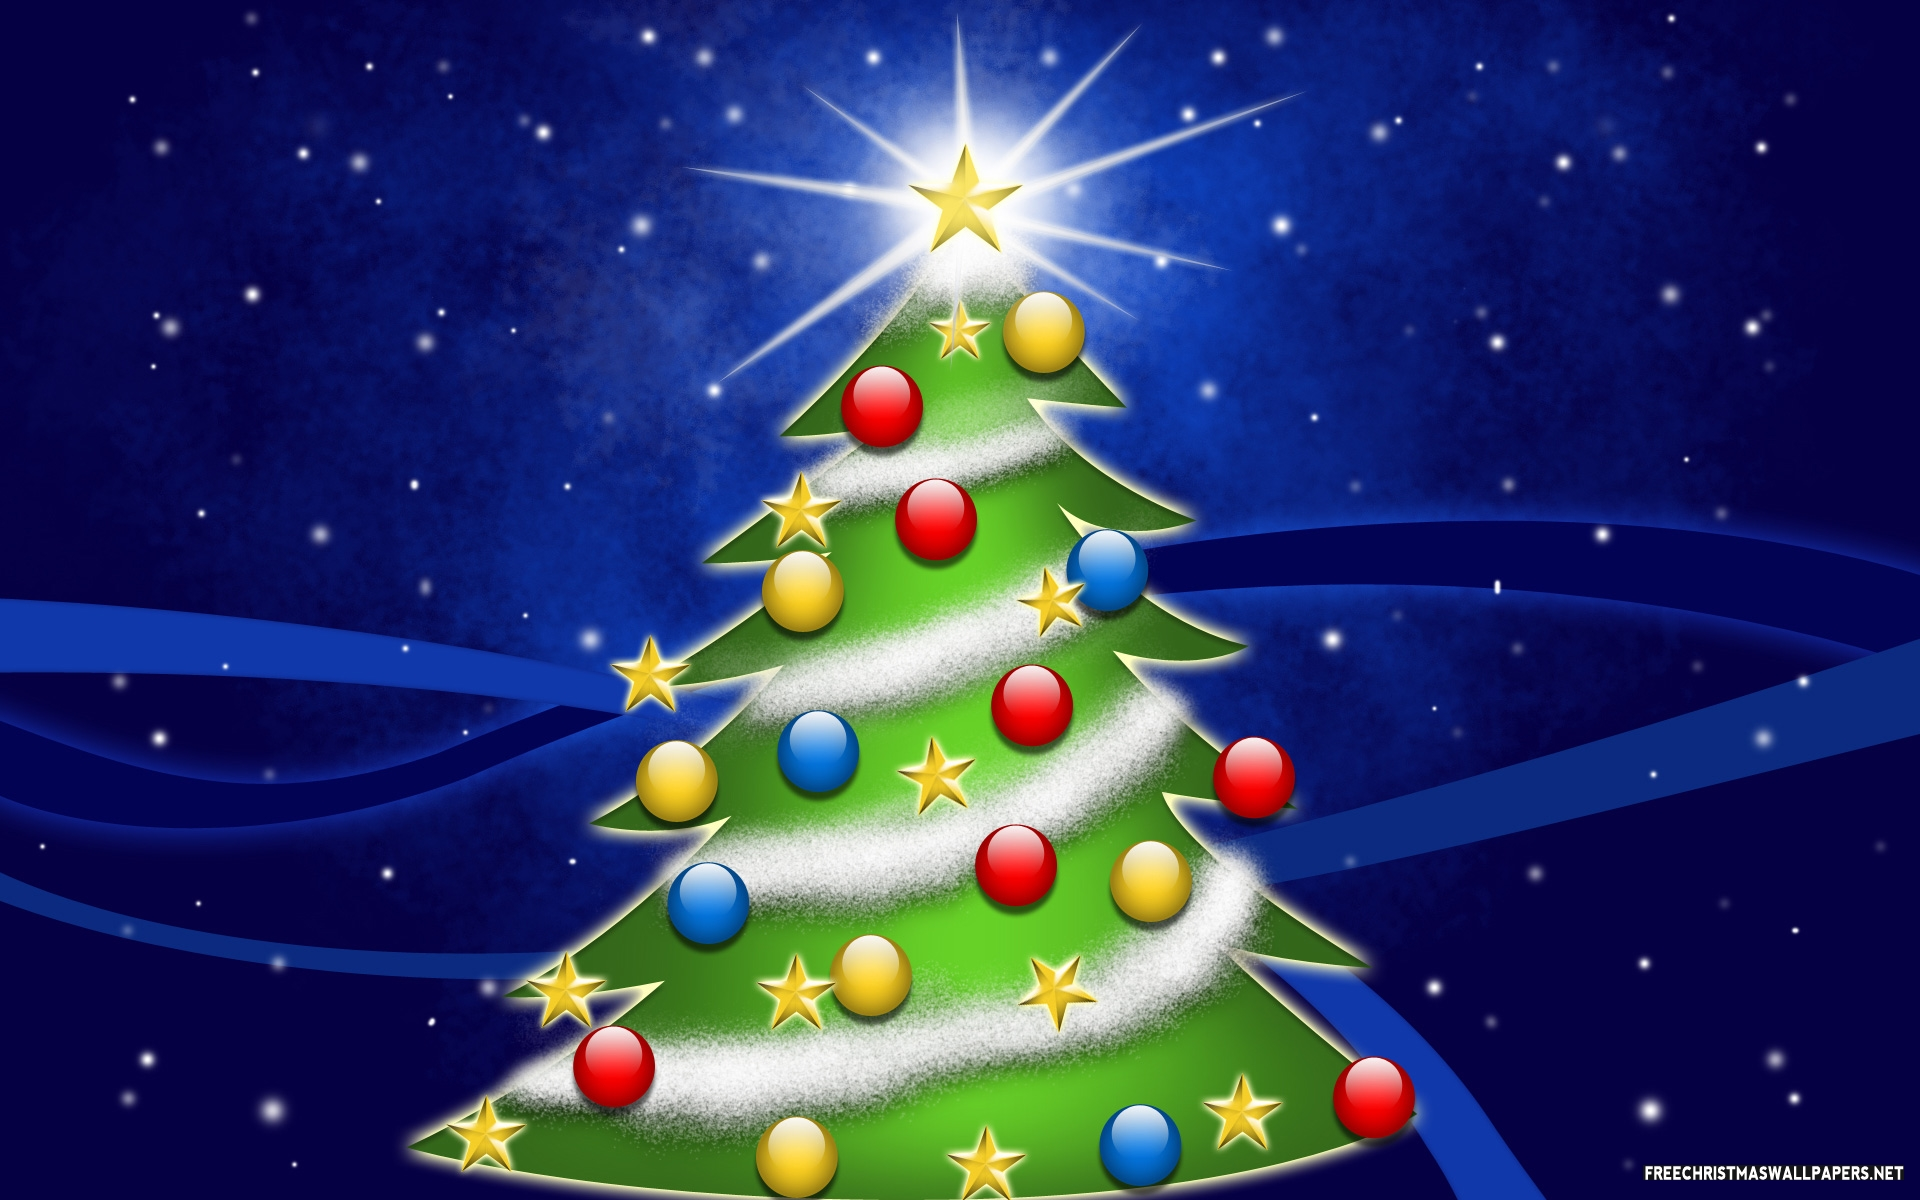 25 outstanding christmas trees images and wallpapers